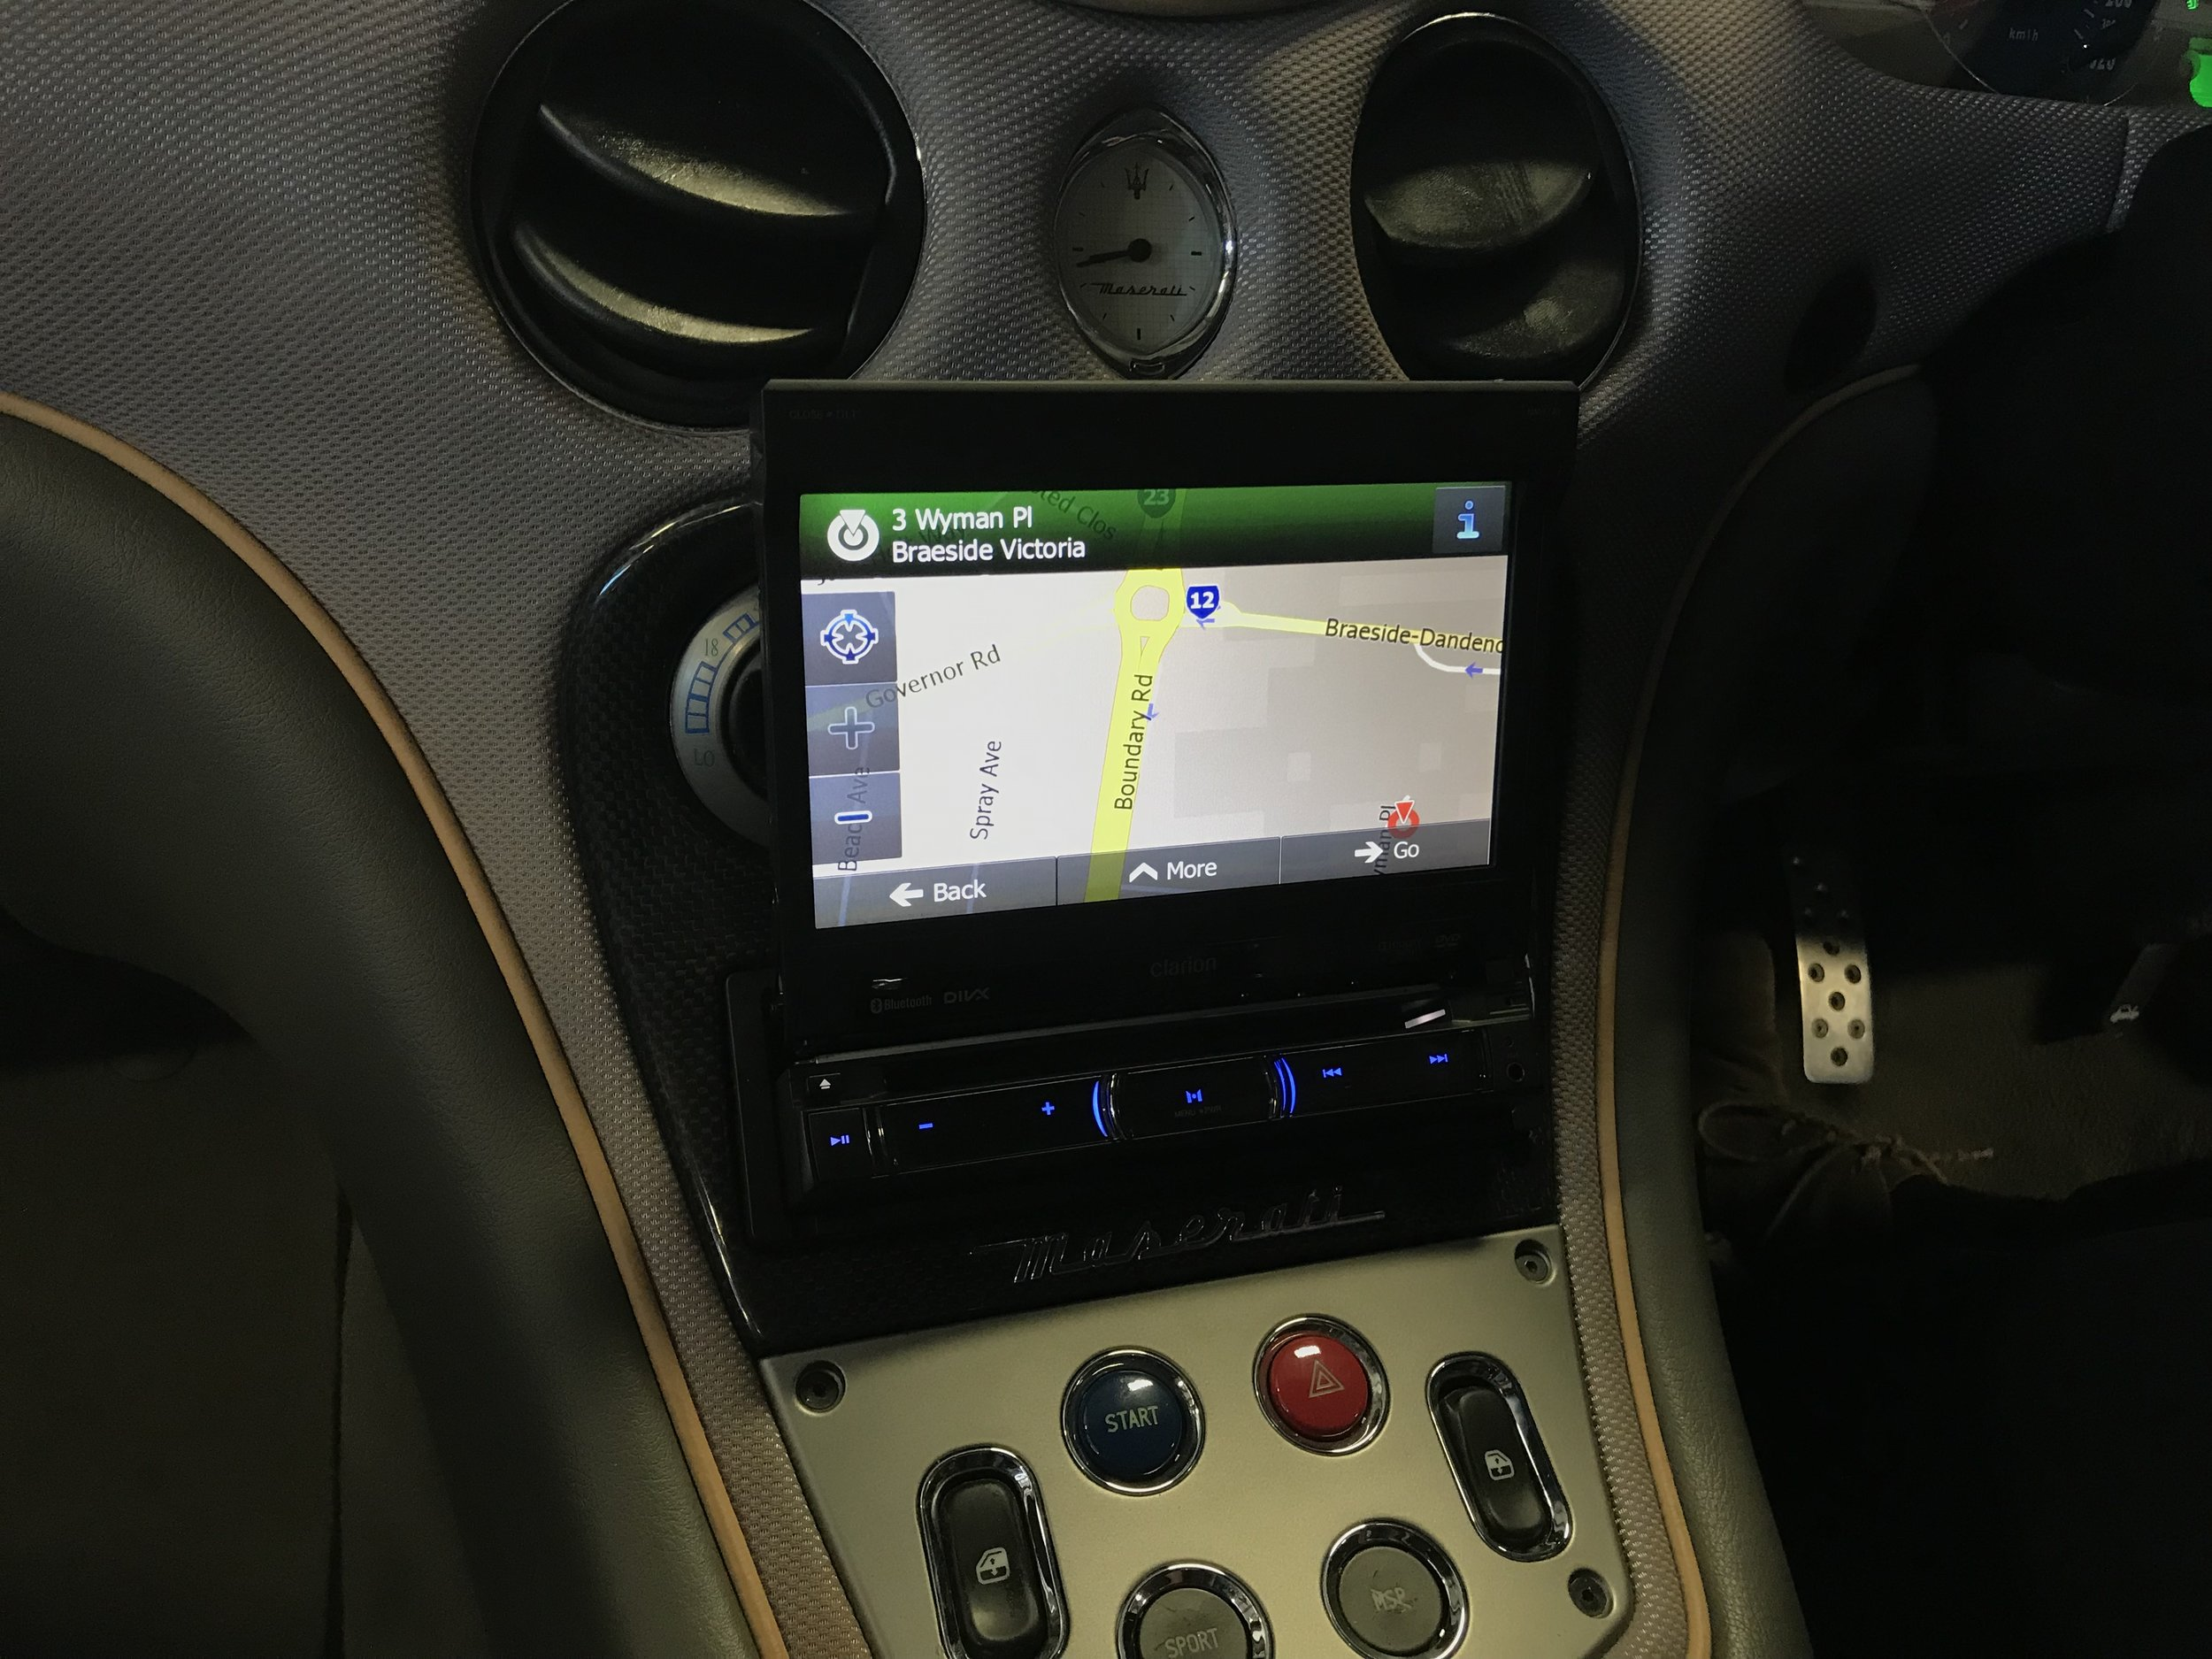 The high resolution screen folds out to display the premium navigation software